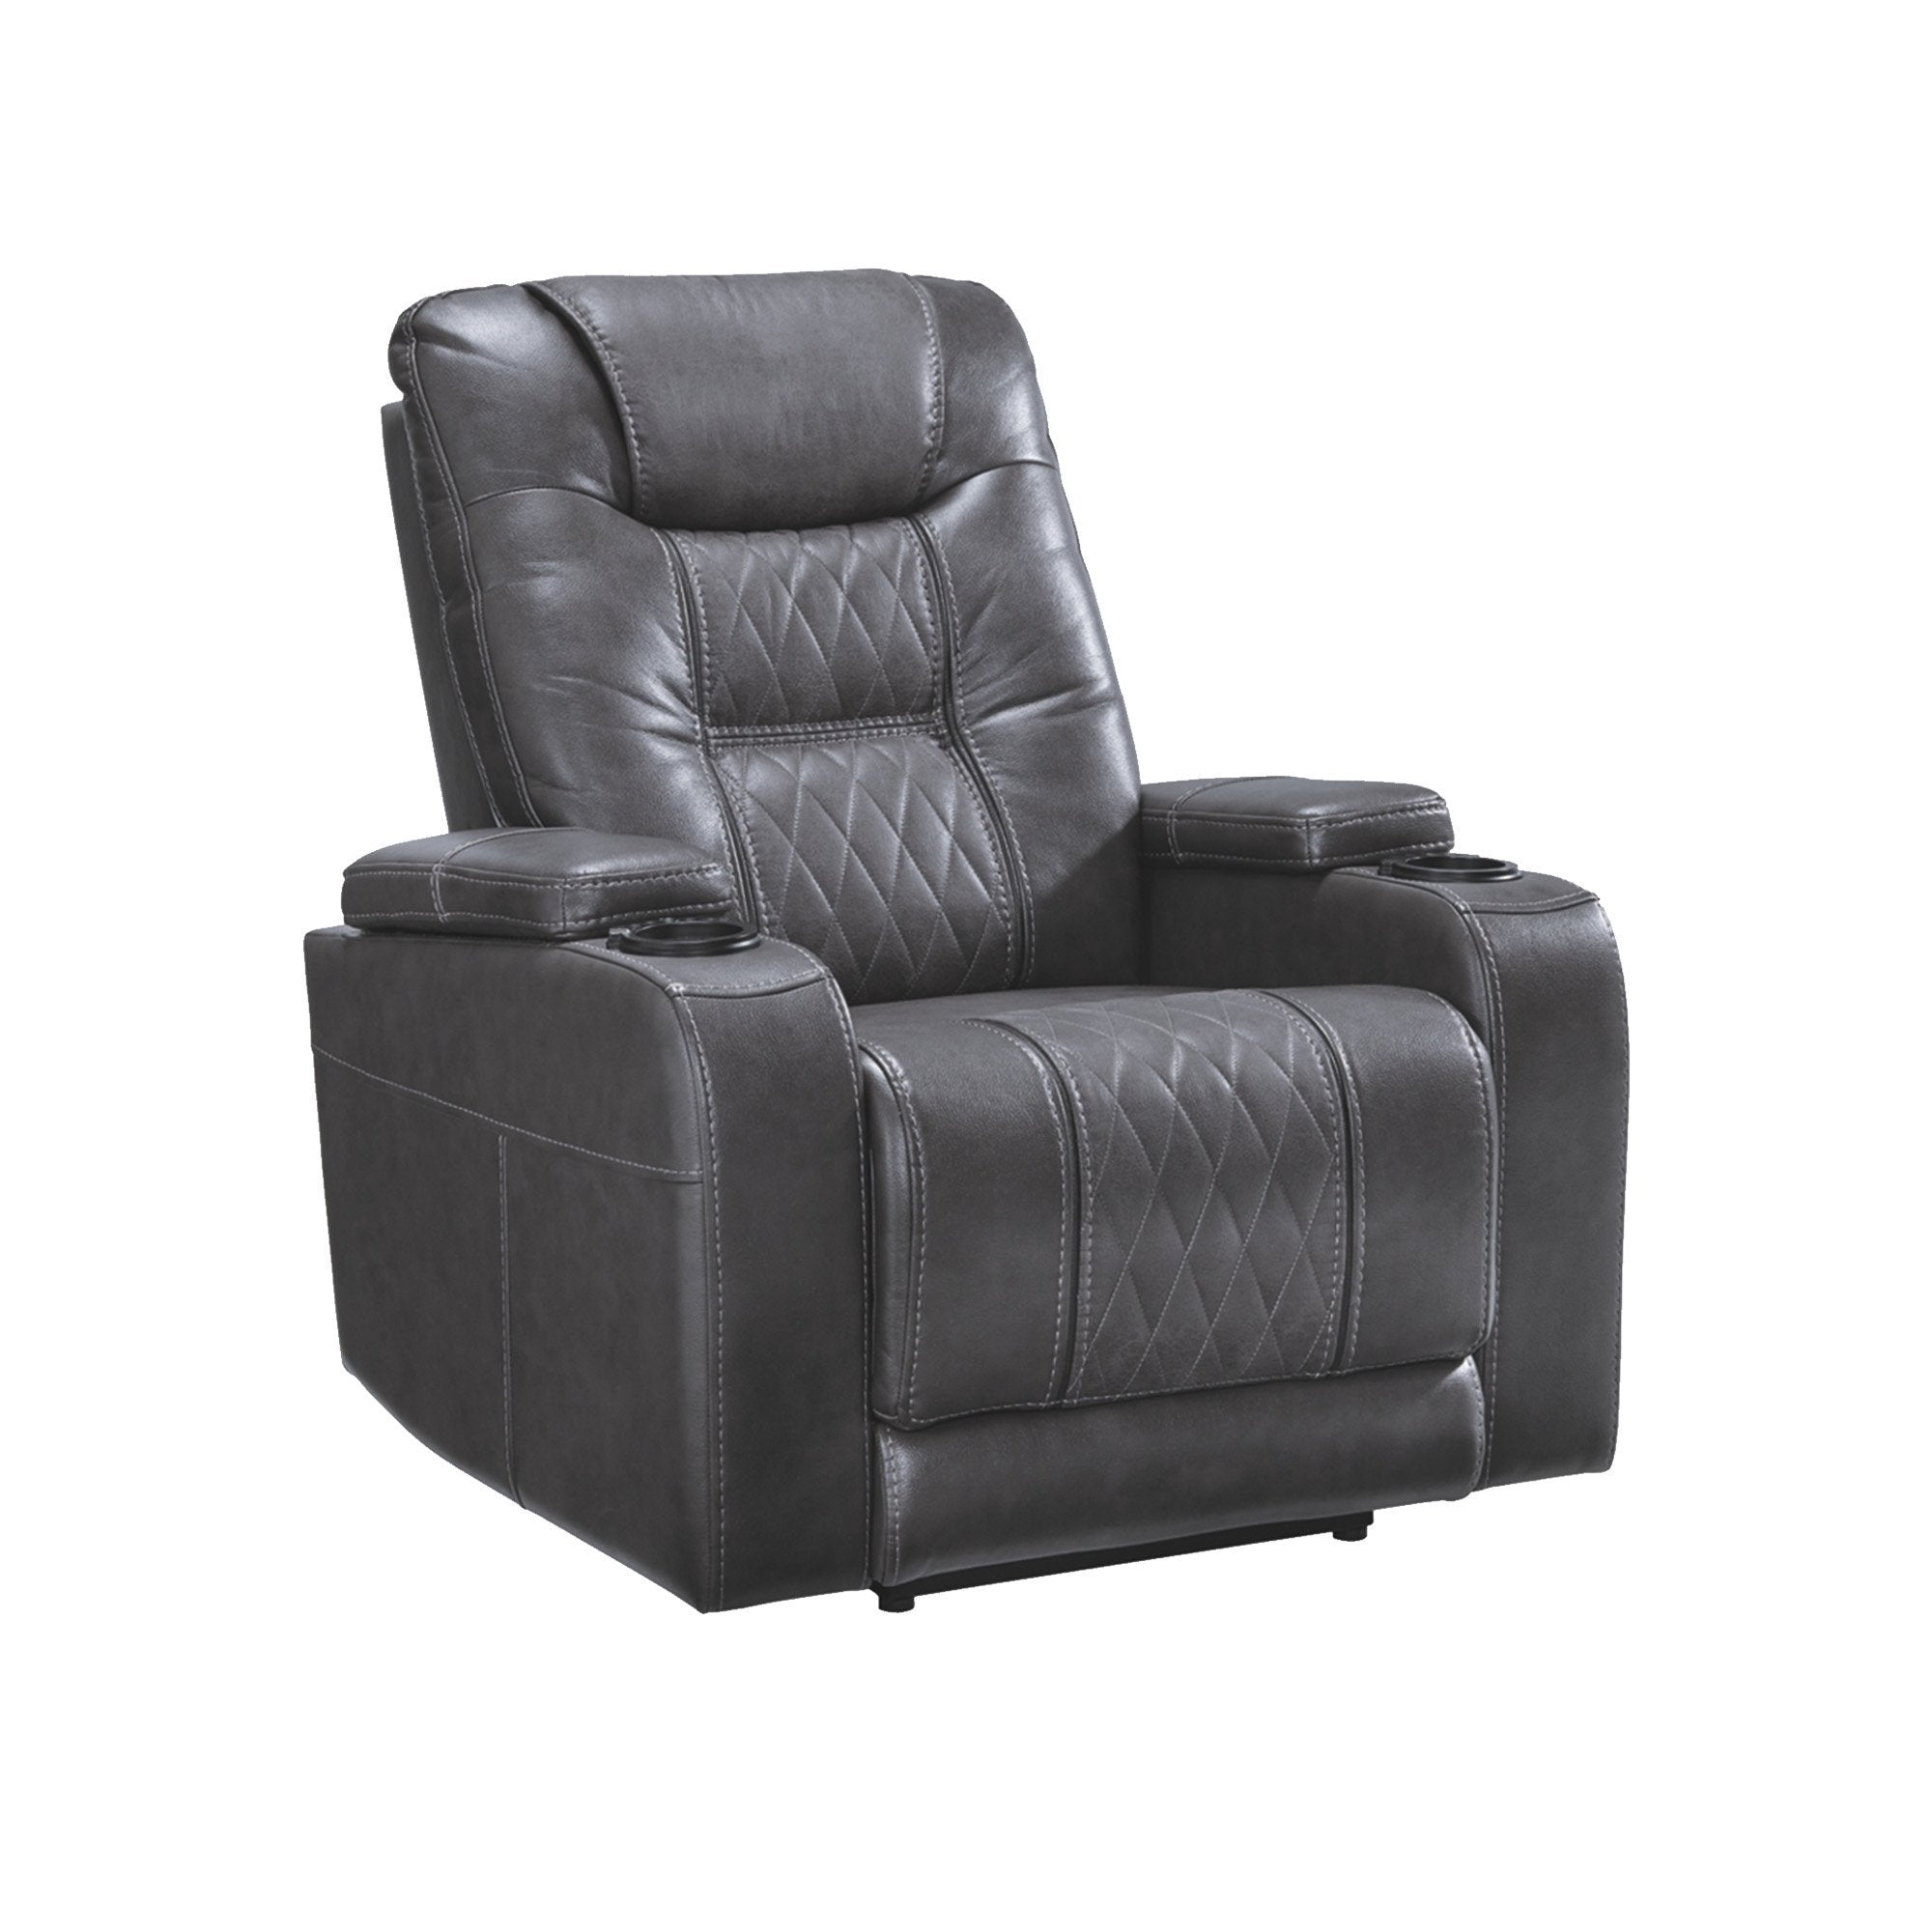 PWR RECLINER by Ashley Showhome Furniture